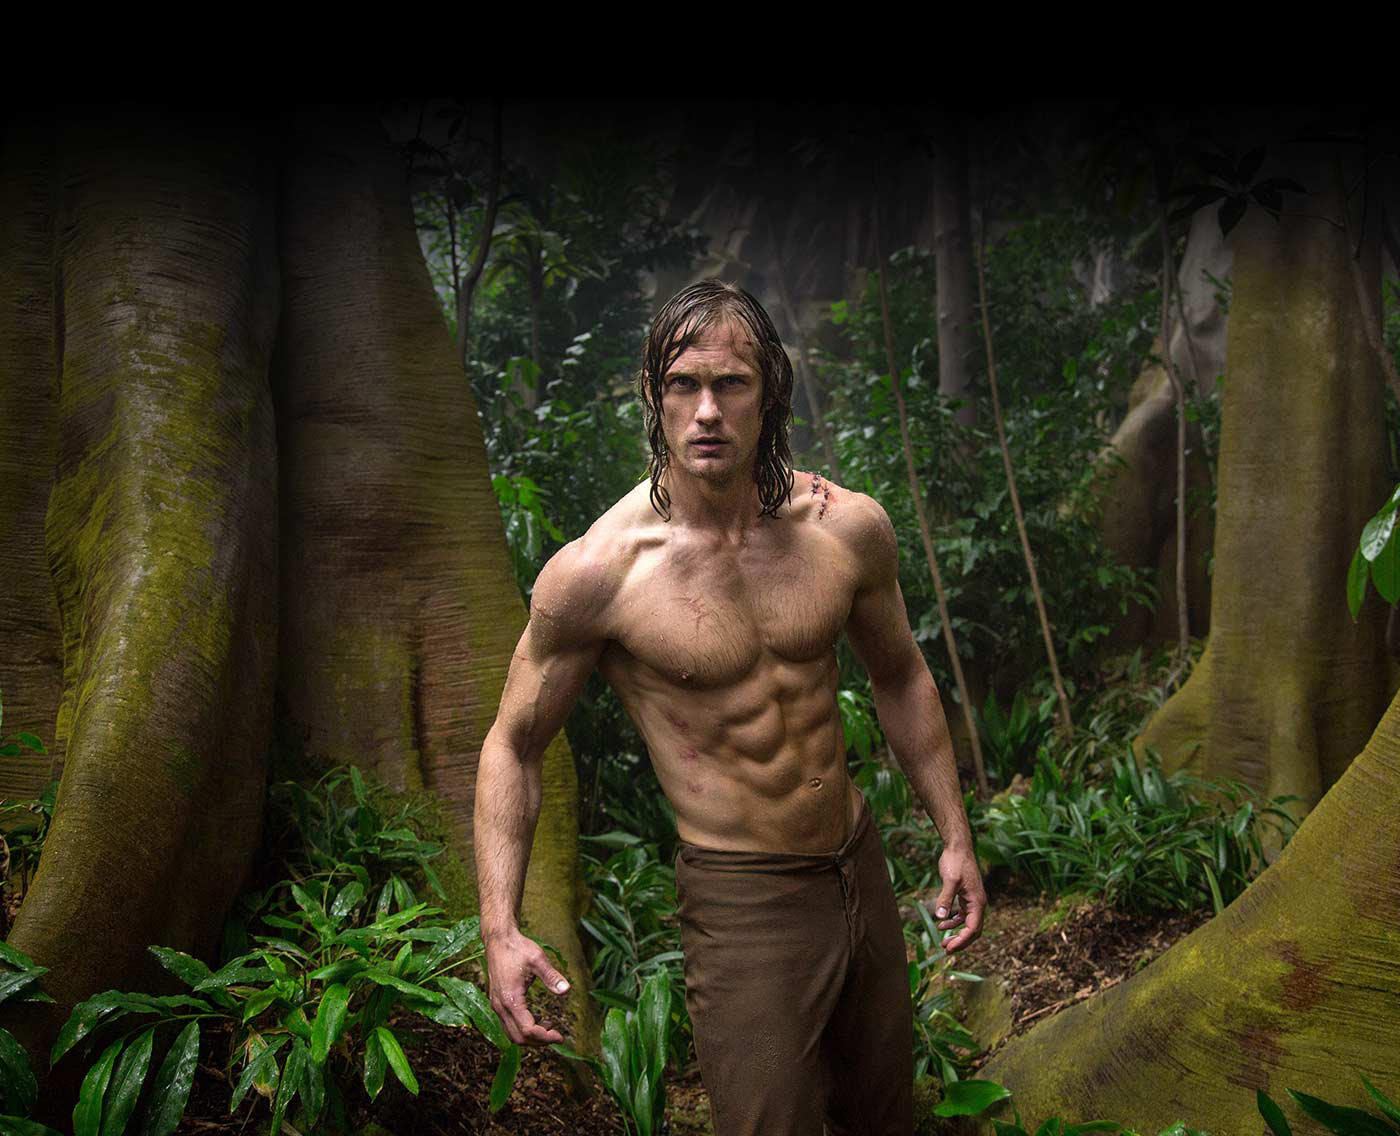 Check out the movie photos of 'The Legend of Tarzan'